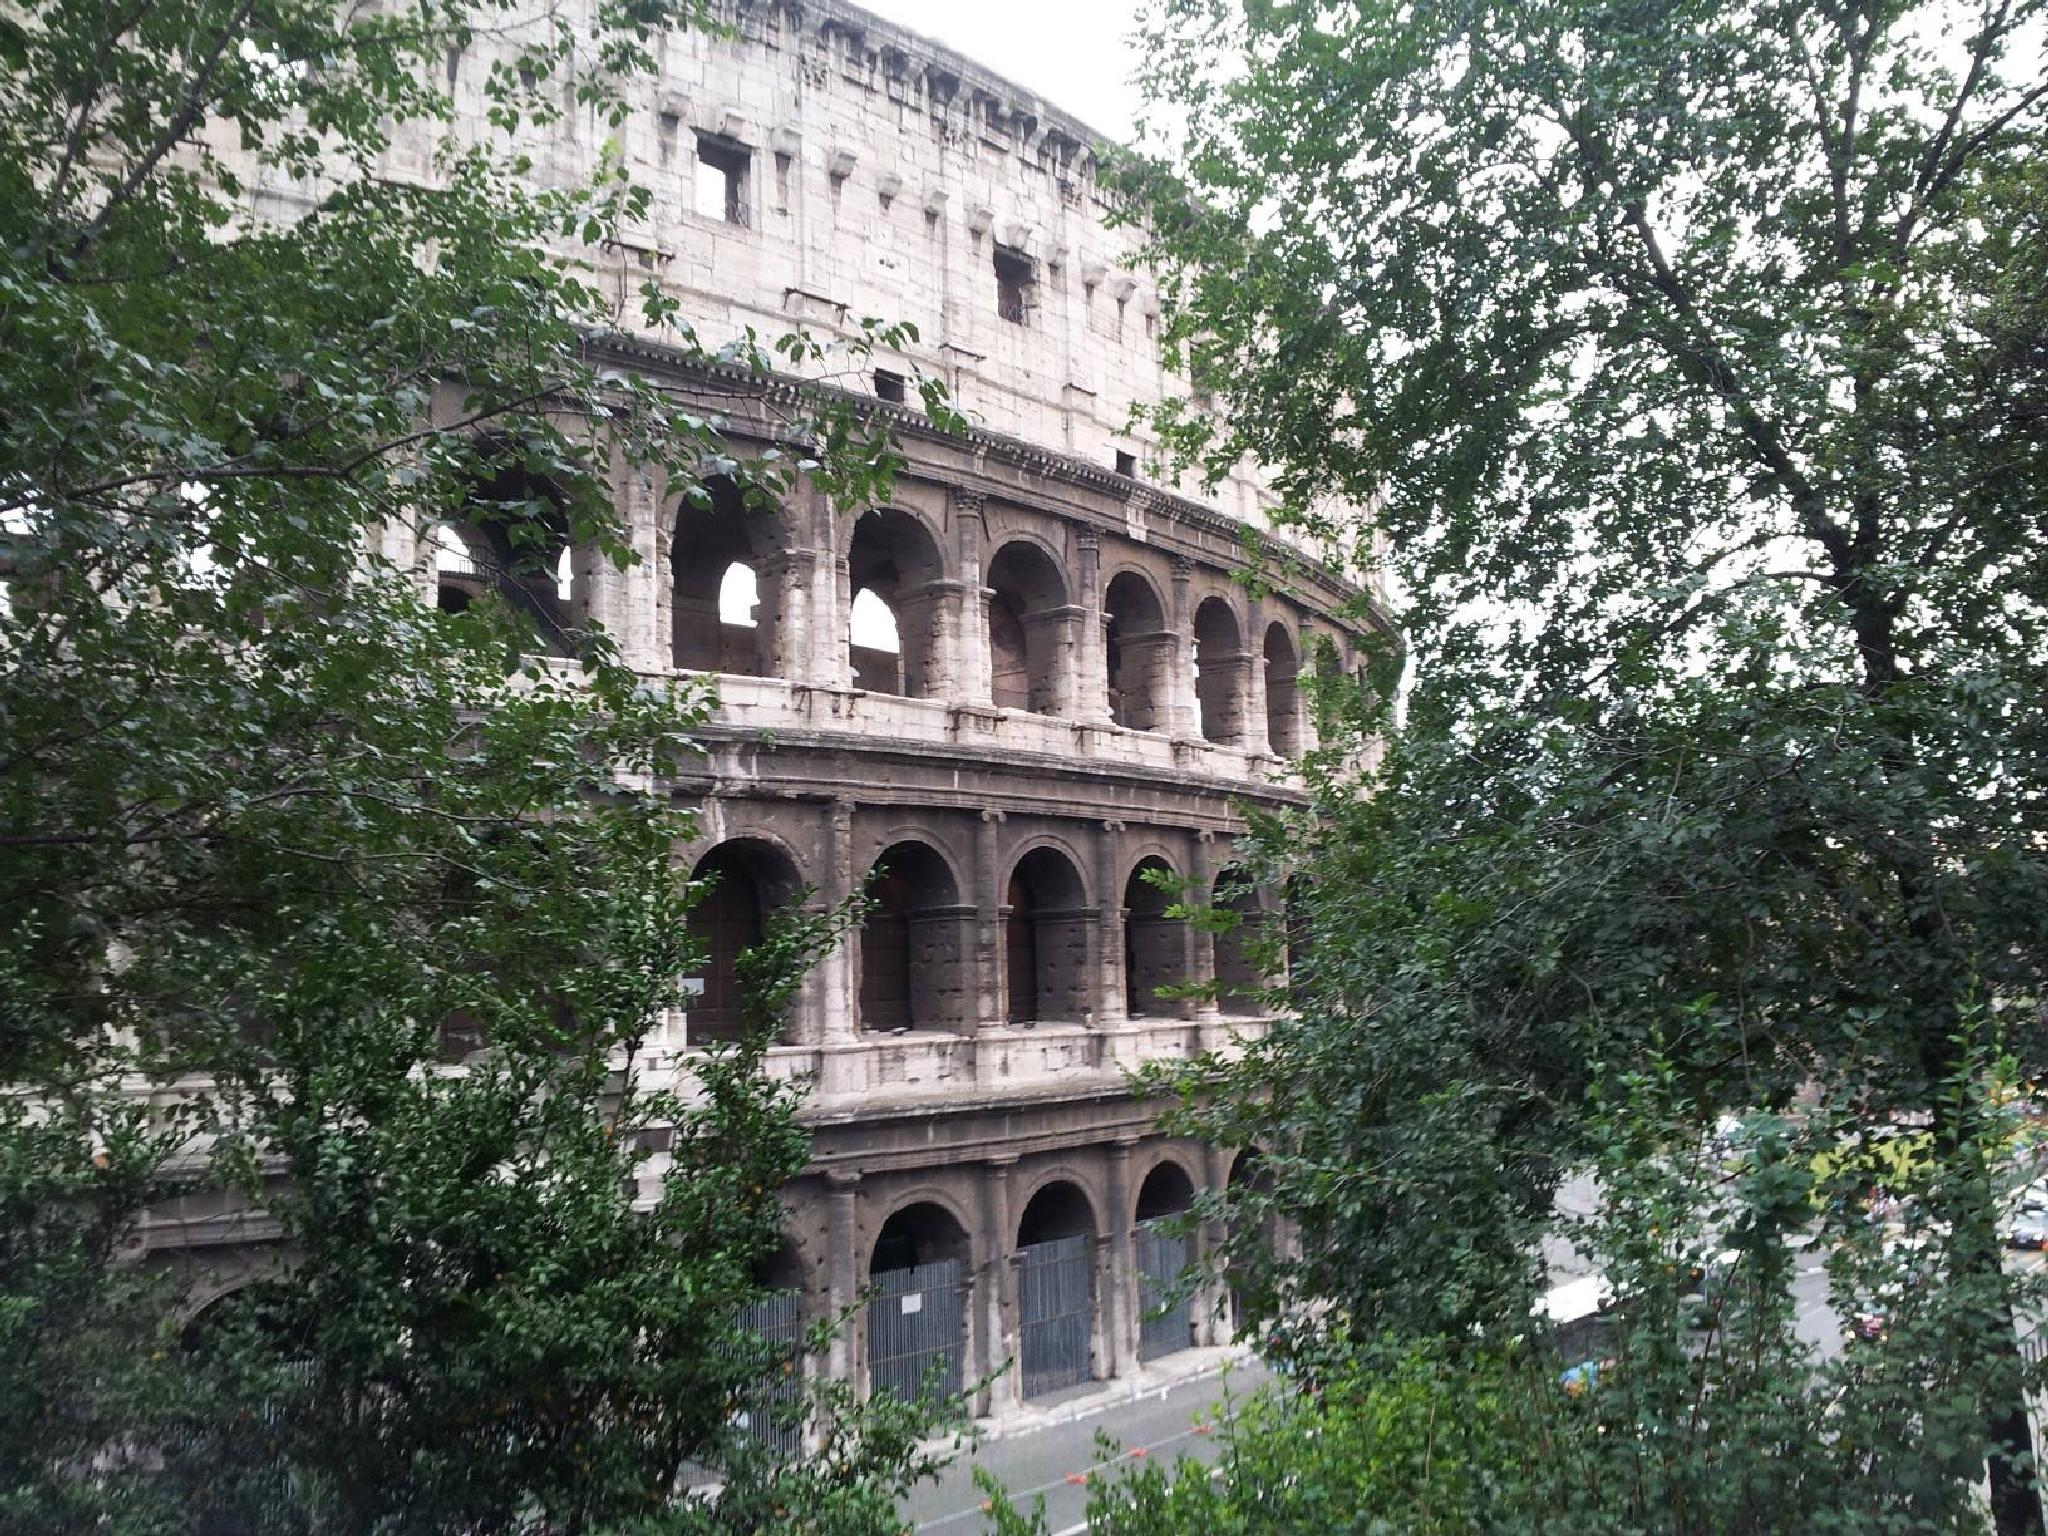 My view of Coloseum,Rome by johnny.kariono